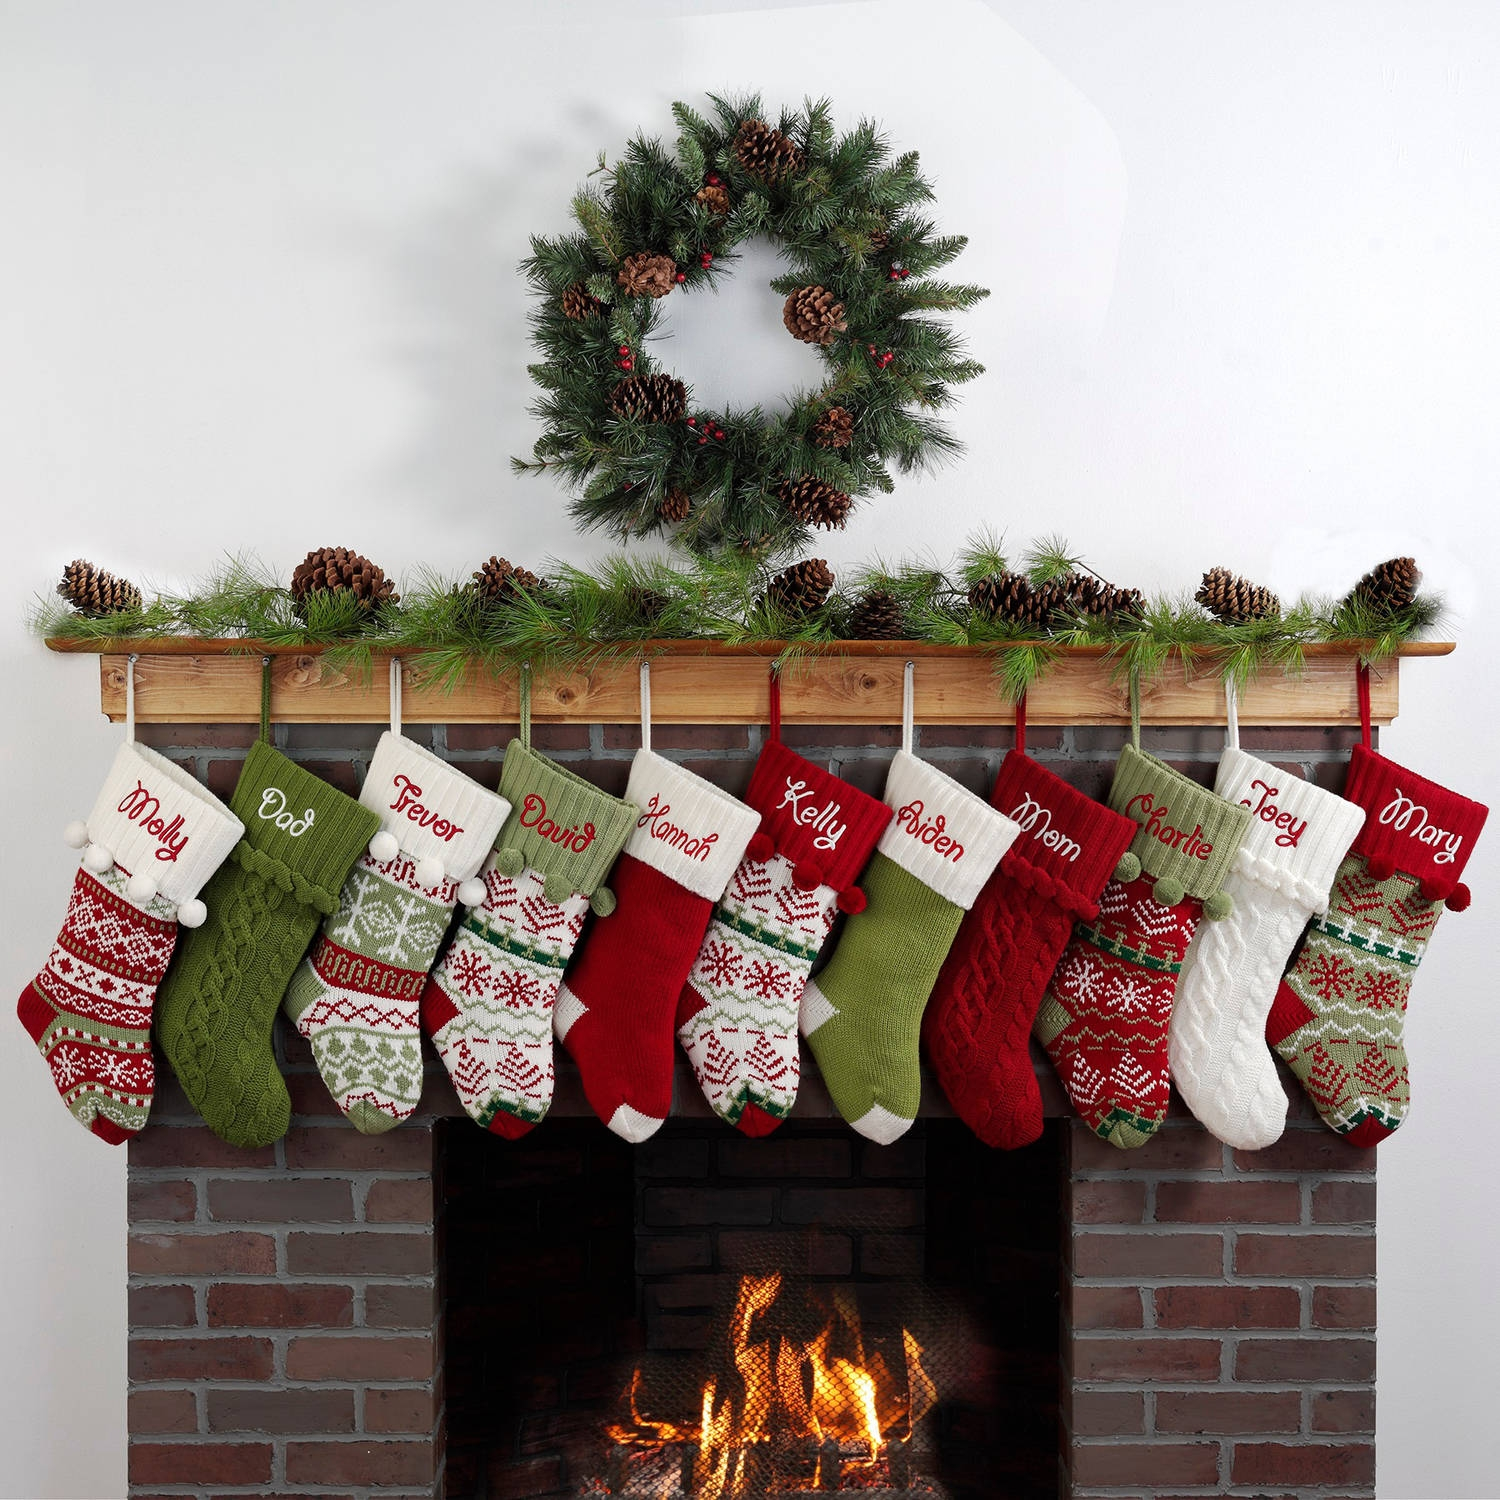 red personalize monogrammed stockings in the christmas display for living room ideas